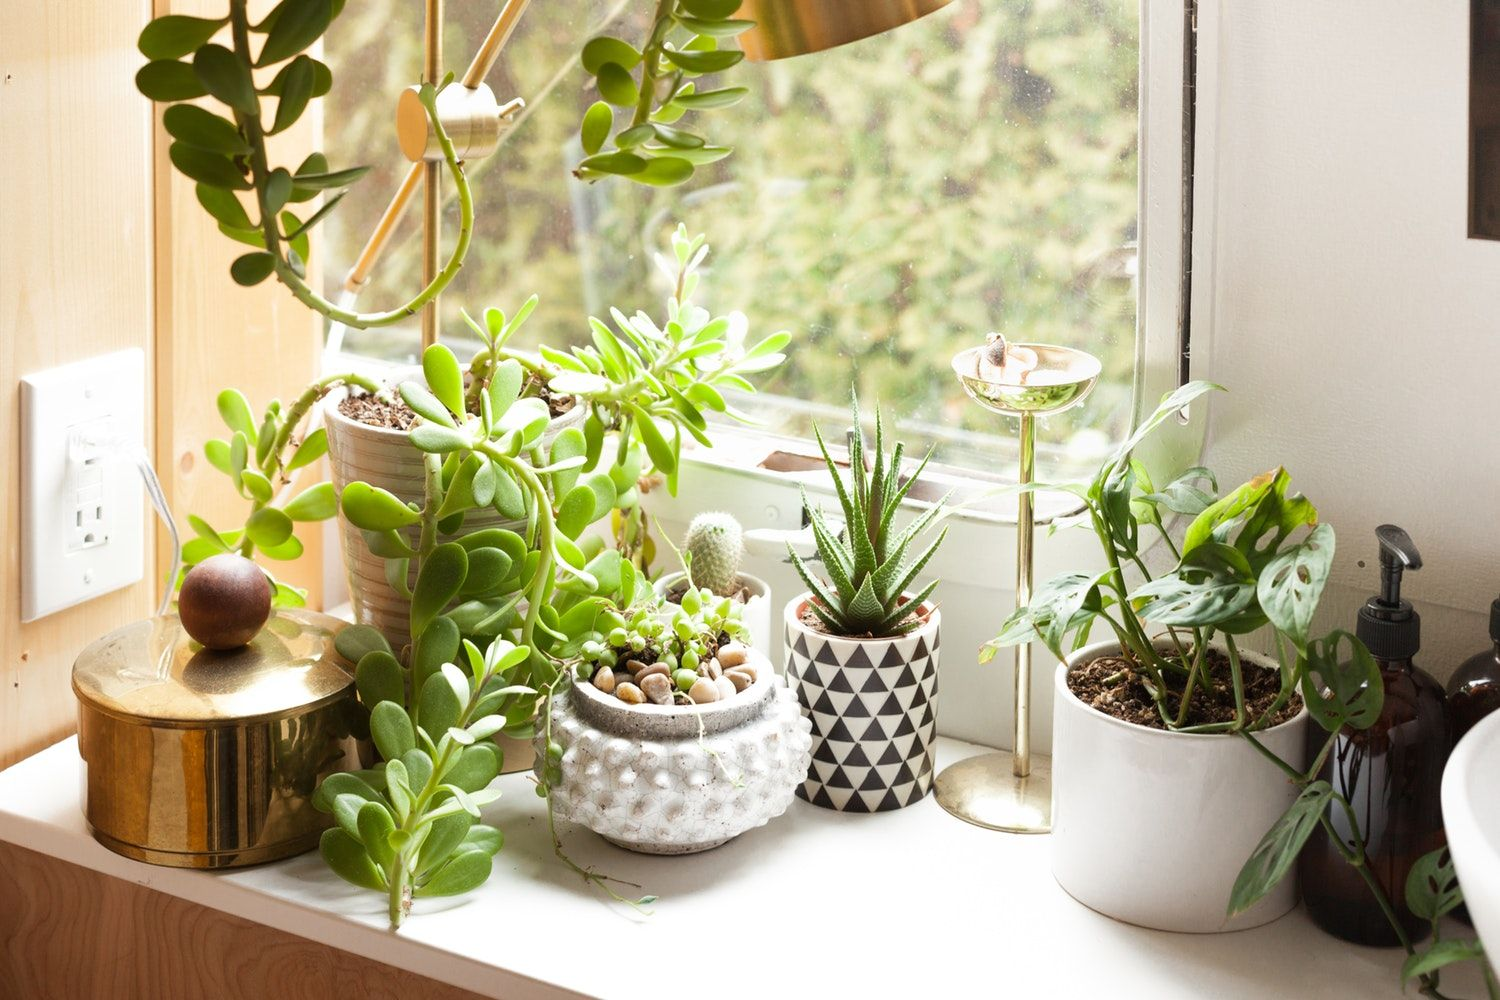 House Plants Decor · Gorgeous Ways To Make Your Home A Lush Green Oasis